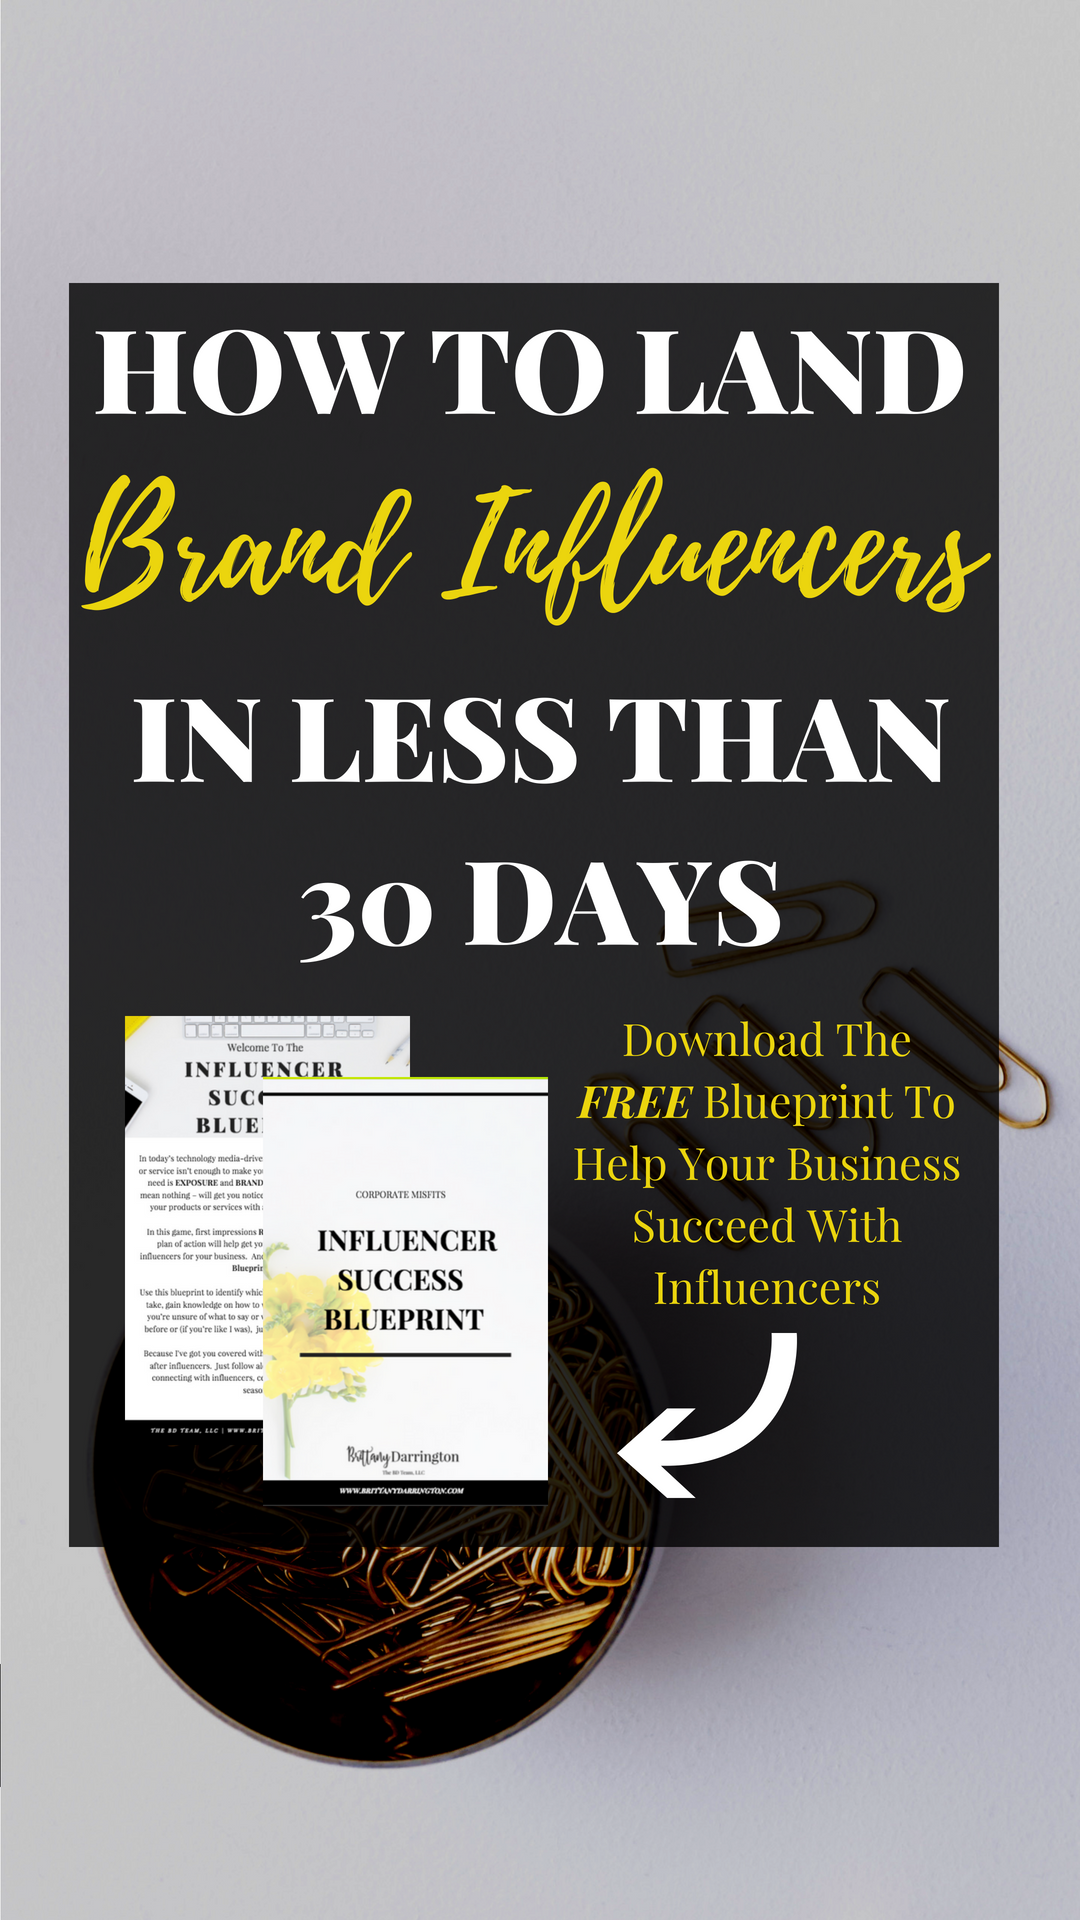 Learn How To Build A Wildly Profitable Brand Through The